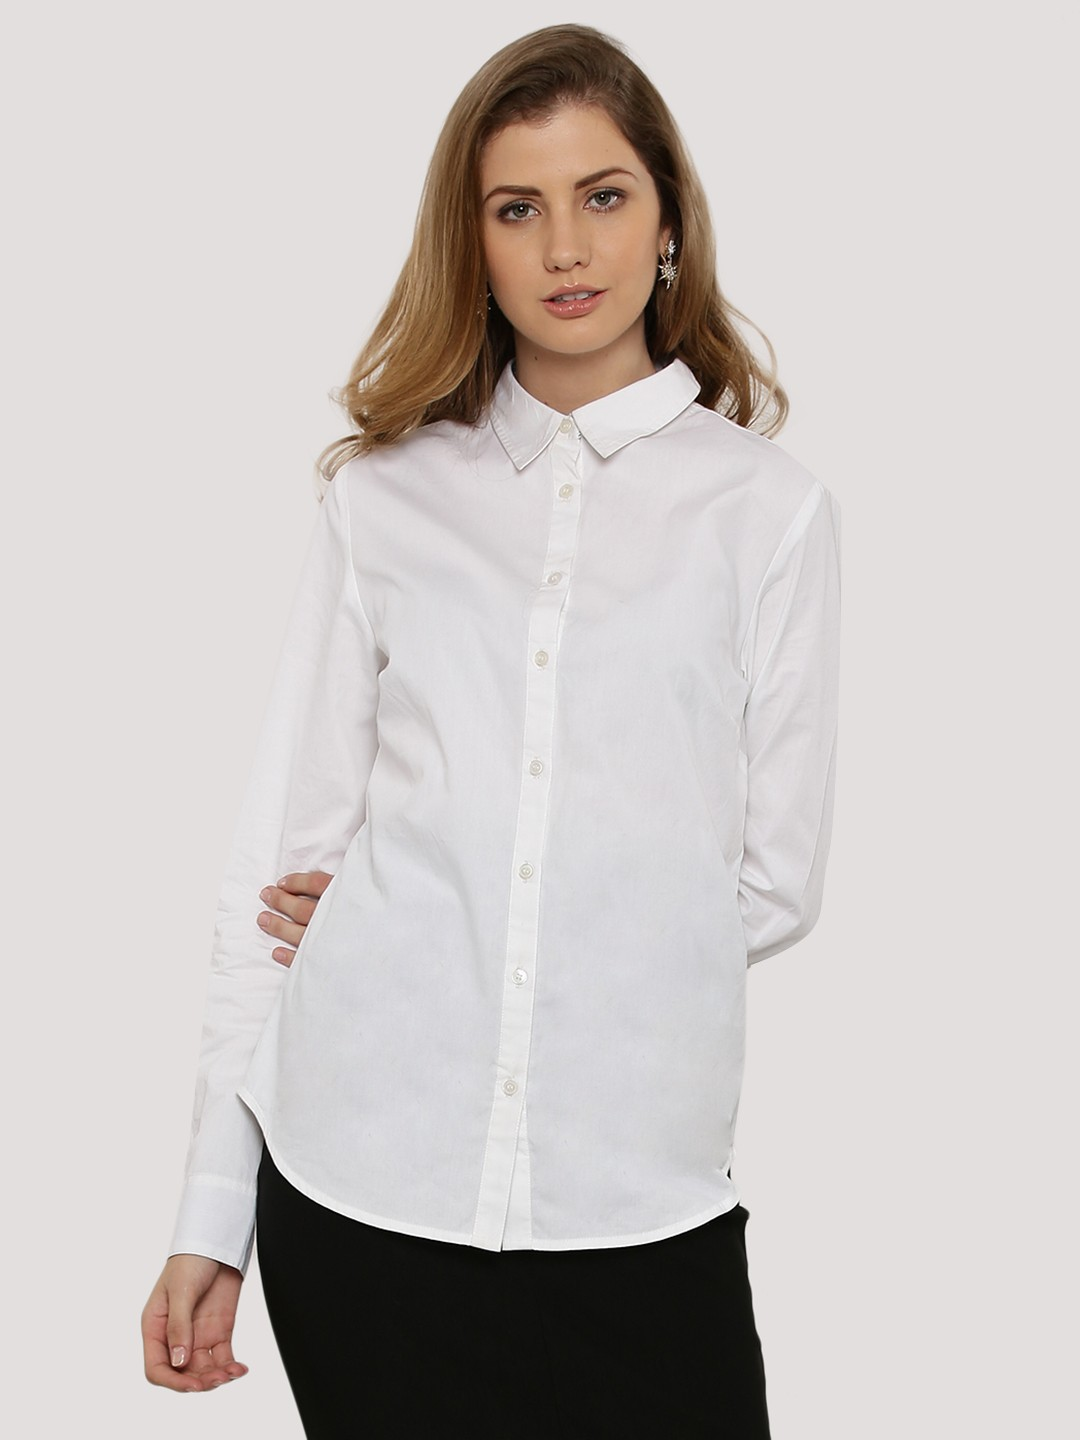 Buy KOOVS Tailored Fitted Shirt For Women - Women's White Shirts ...